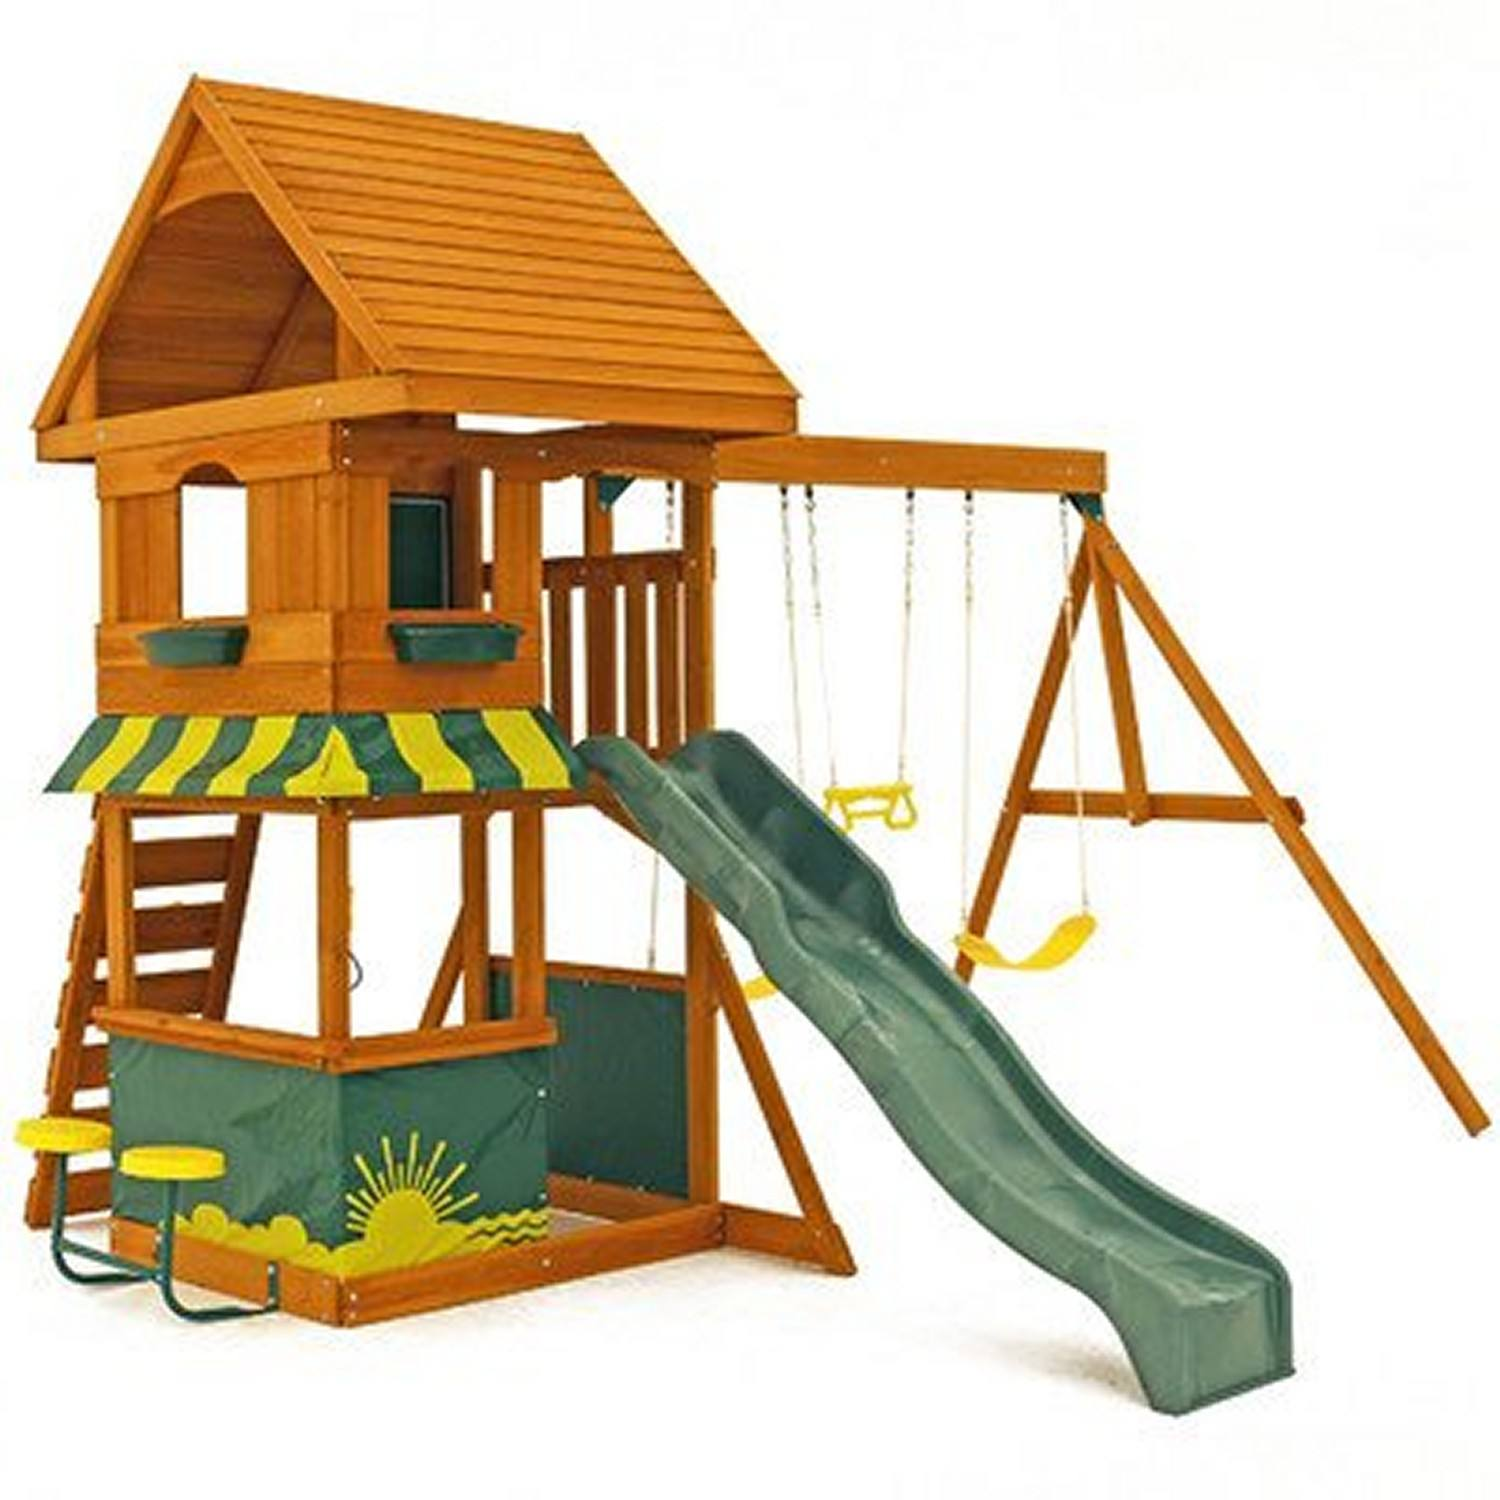 Backyard Playset Reviews the 8 best wooden swing sets and playsets to buy in 2018